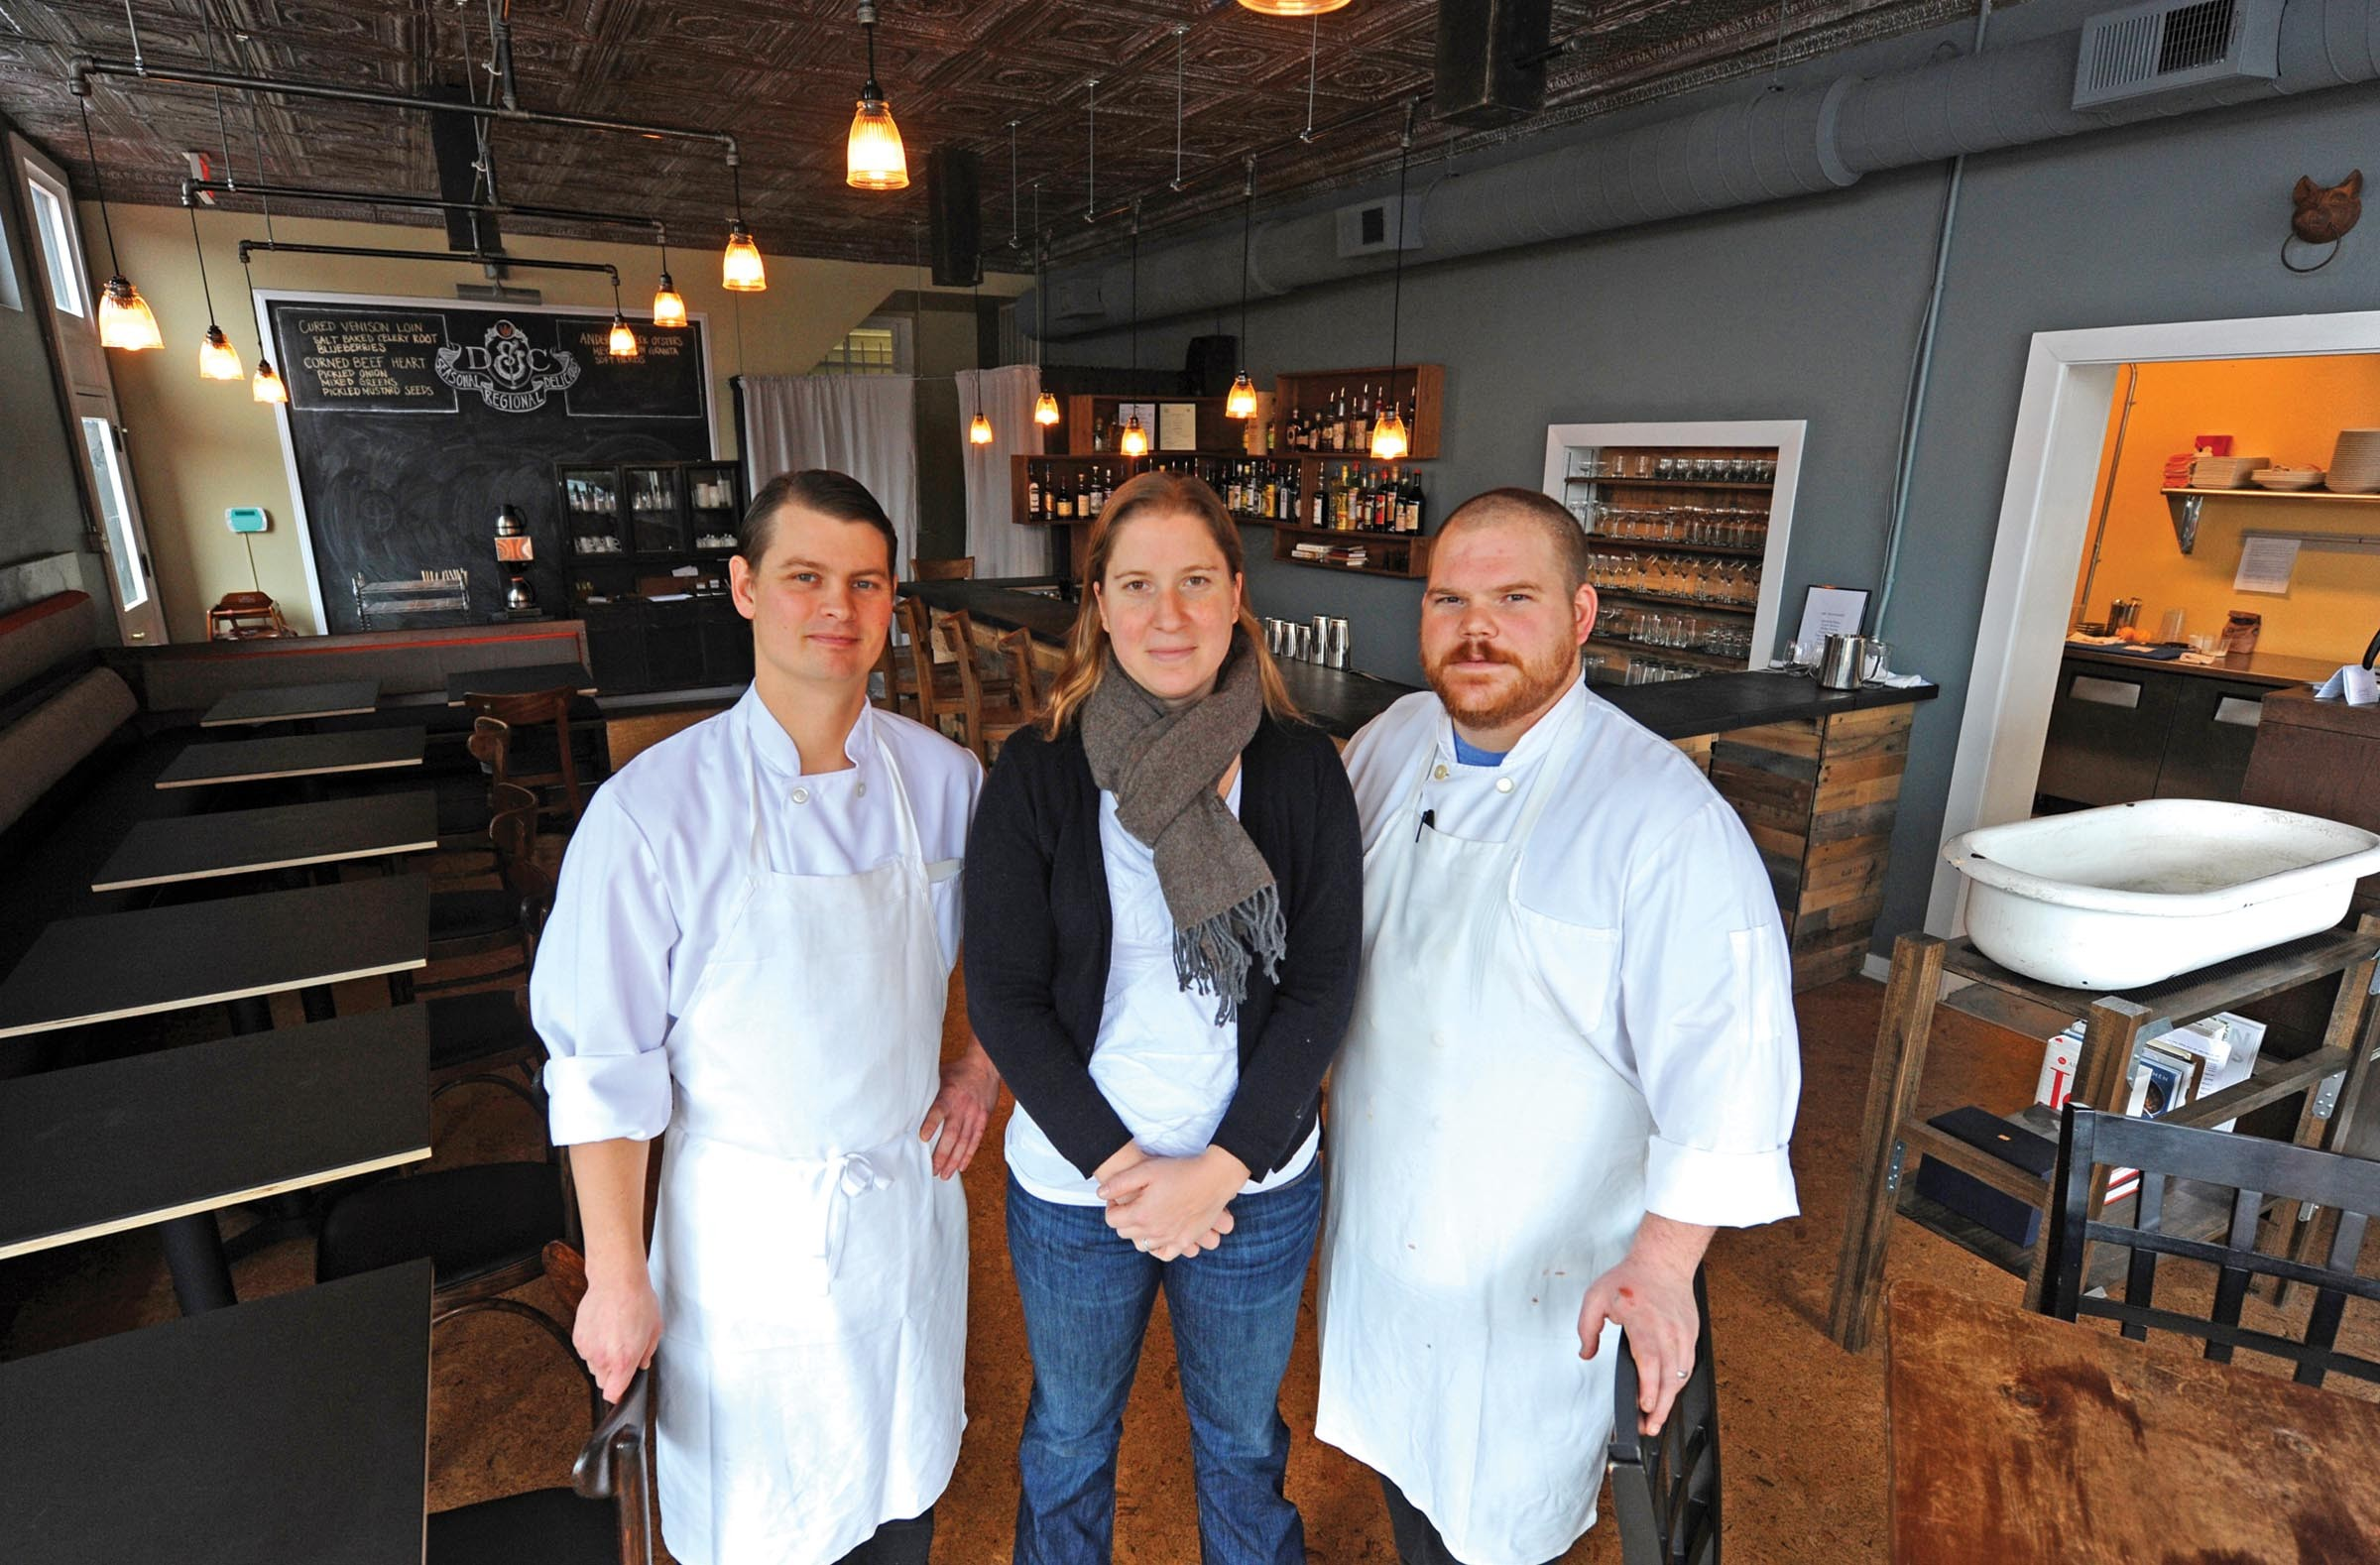 Philip Perrow, Michelle Peake Shriver and Caleb Shriver rarely have paused since the opening of their Church Hill restaurant Dutch & Co. last week. The spot has drawn immediate interest from neighbors and fans of the trio's work at some of Richmond's best restaurants. - SCOTT ELMQUIST